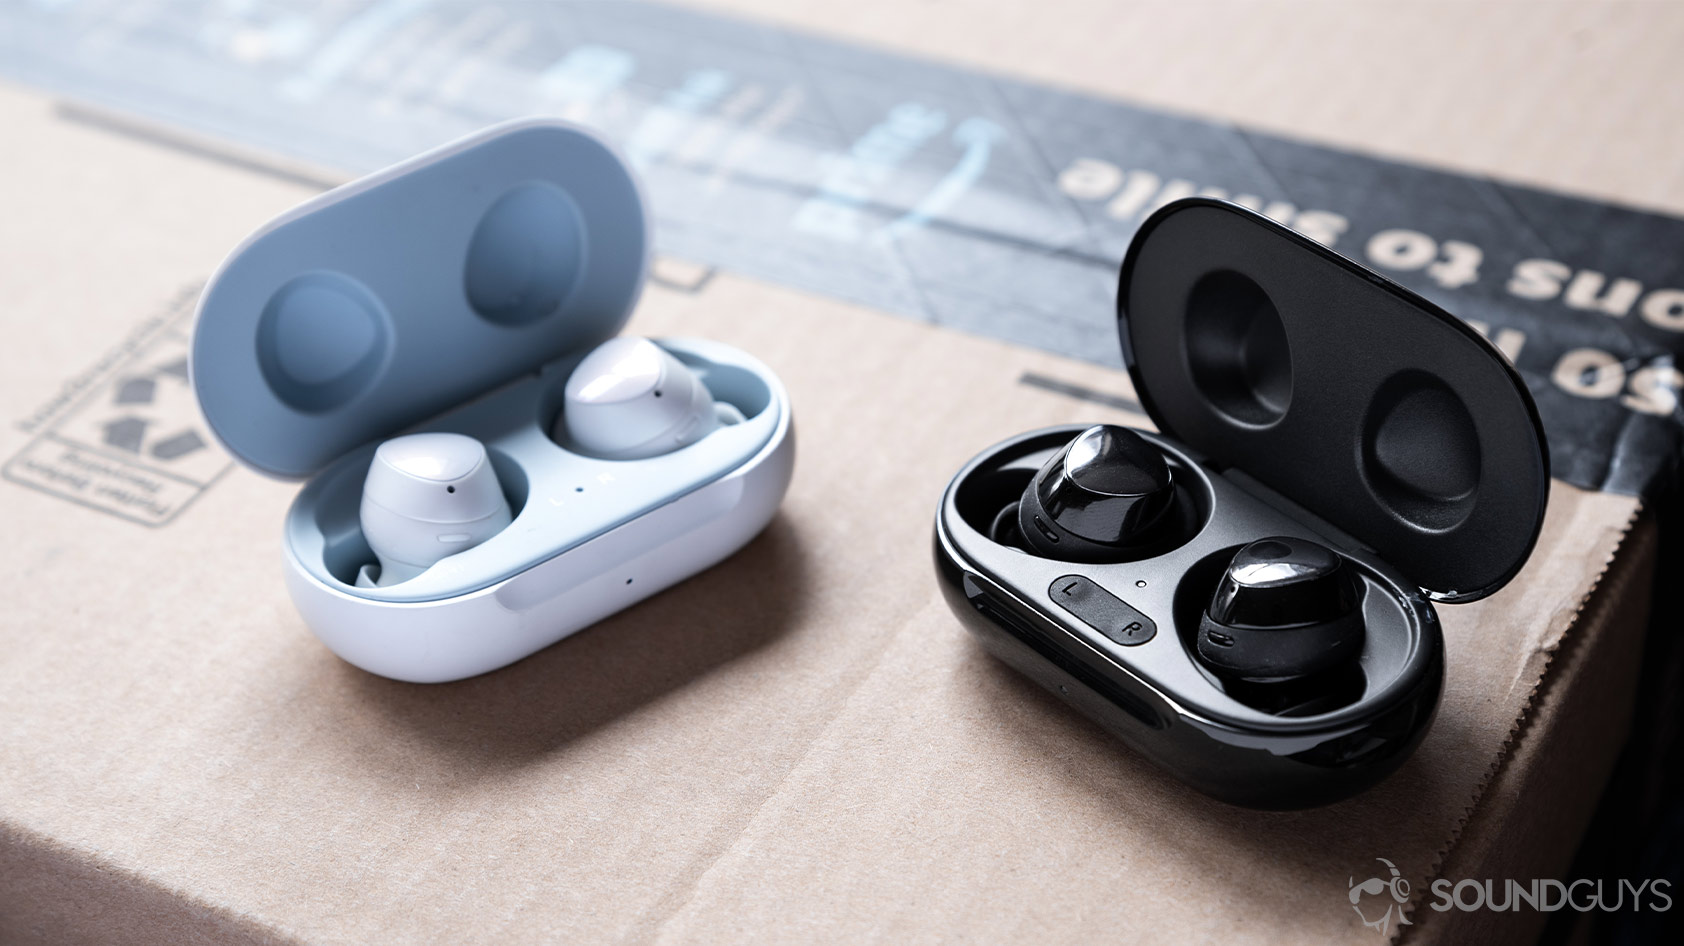 Samsung Galaxy Buds Plus Vs Samsung Galaxy Buds Soundguys